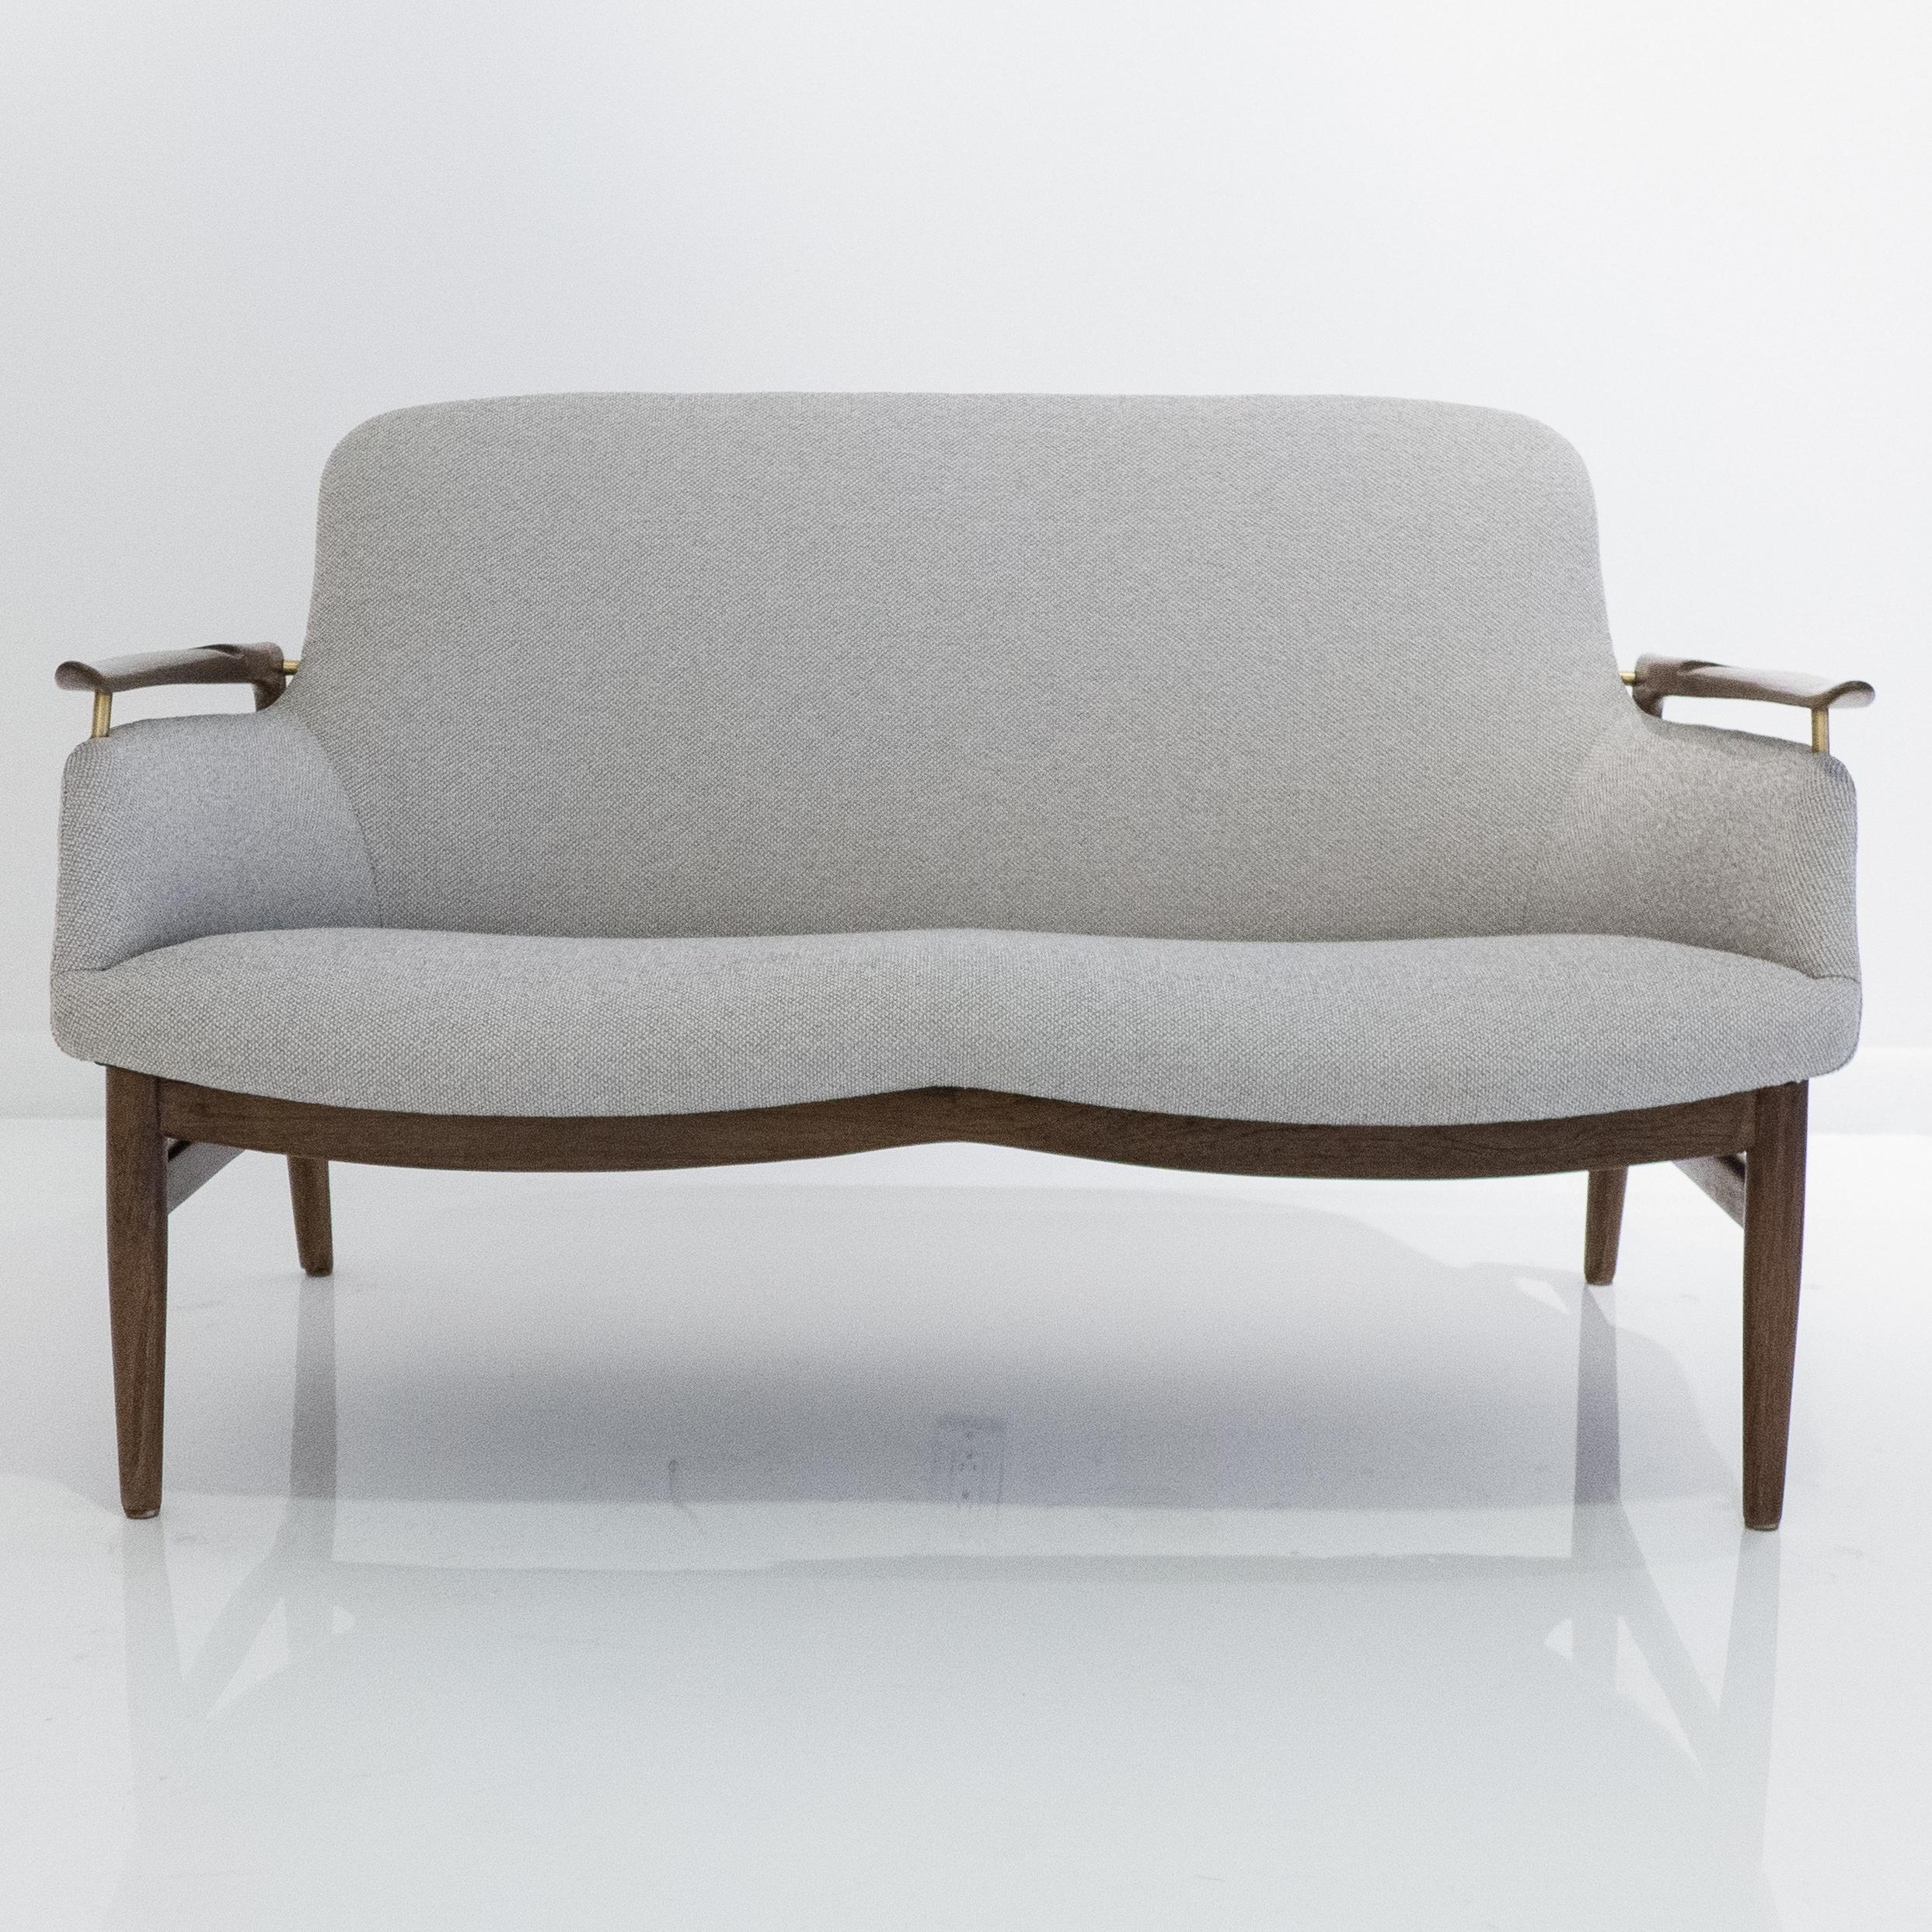 Finn Juhl Sofa And Chair For Niels Vodder   Image 3 Of 11